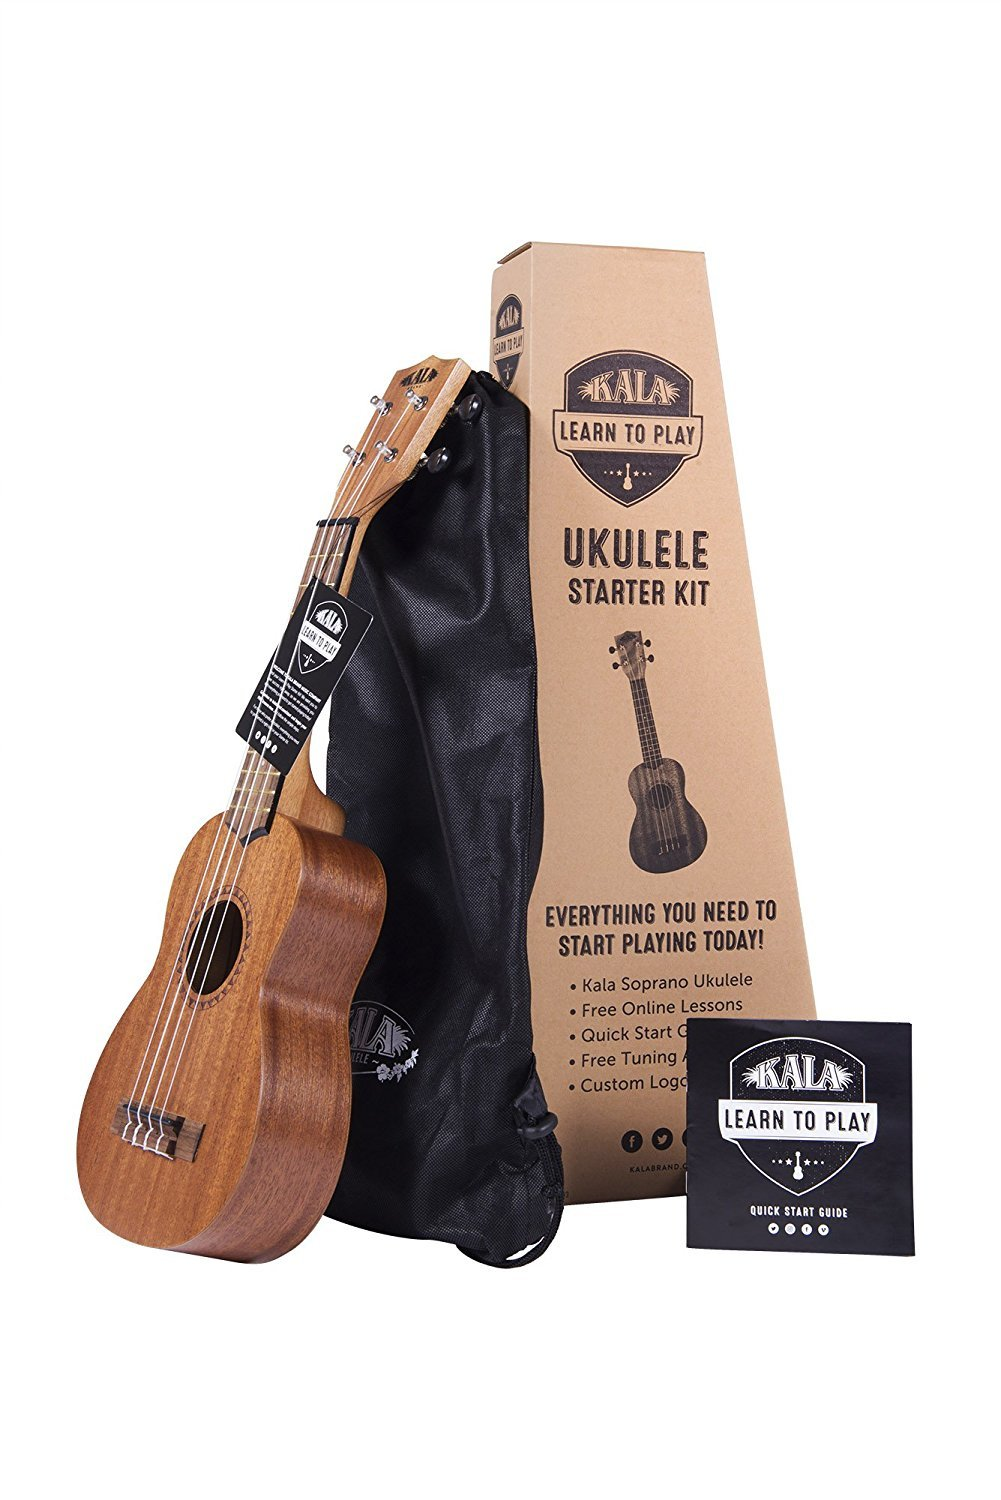 Official Kala Learn to Play Ukulele Soprano Starter Kit, Light Mahogany - Includes online lessons, tuner, and app